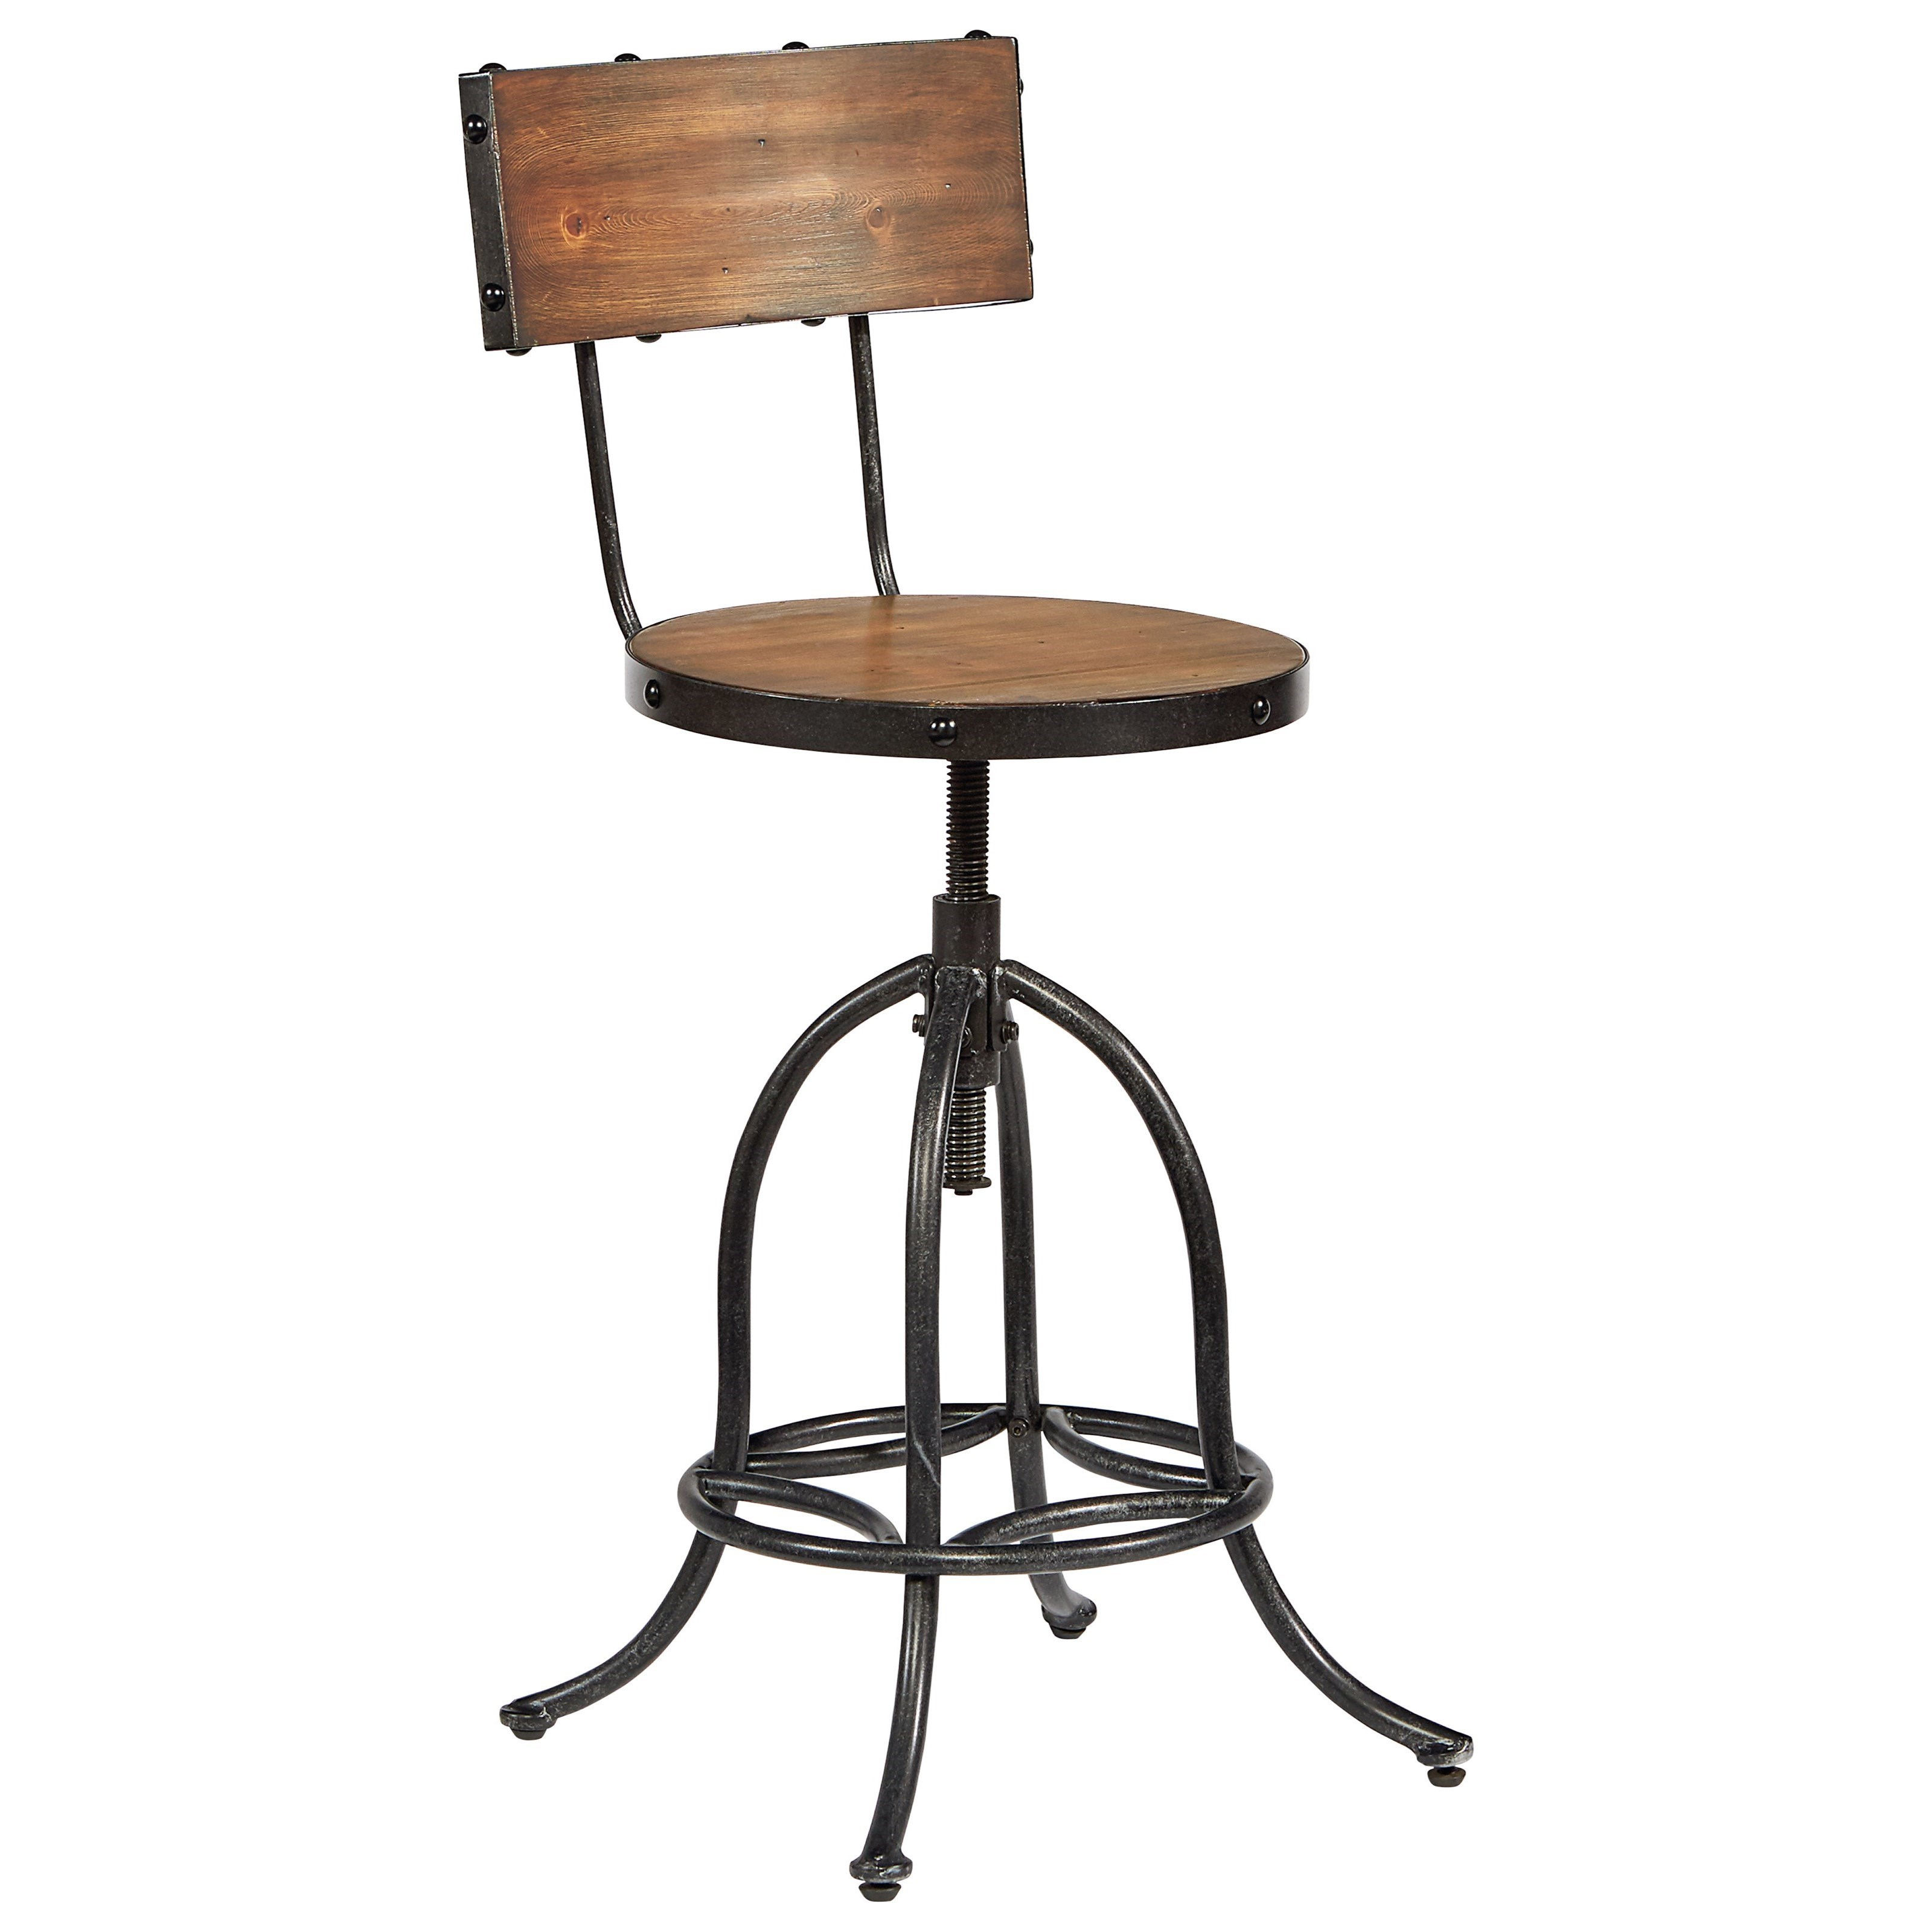 Magnolia Home By Joanna Gaines Accent Elements Architect Stool With Bronze  Legs And Wooden Seat